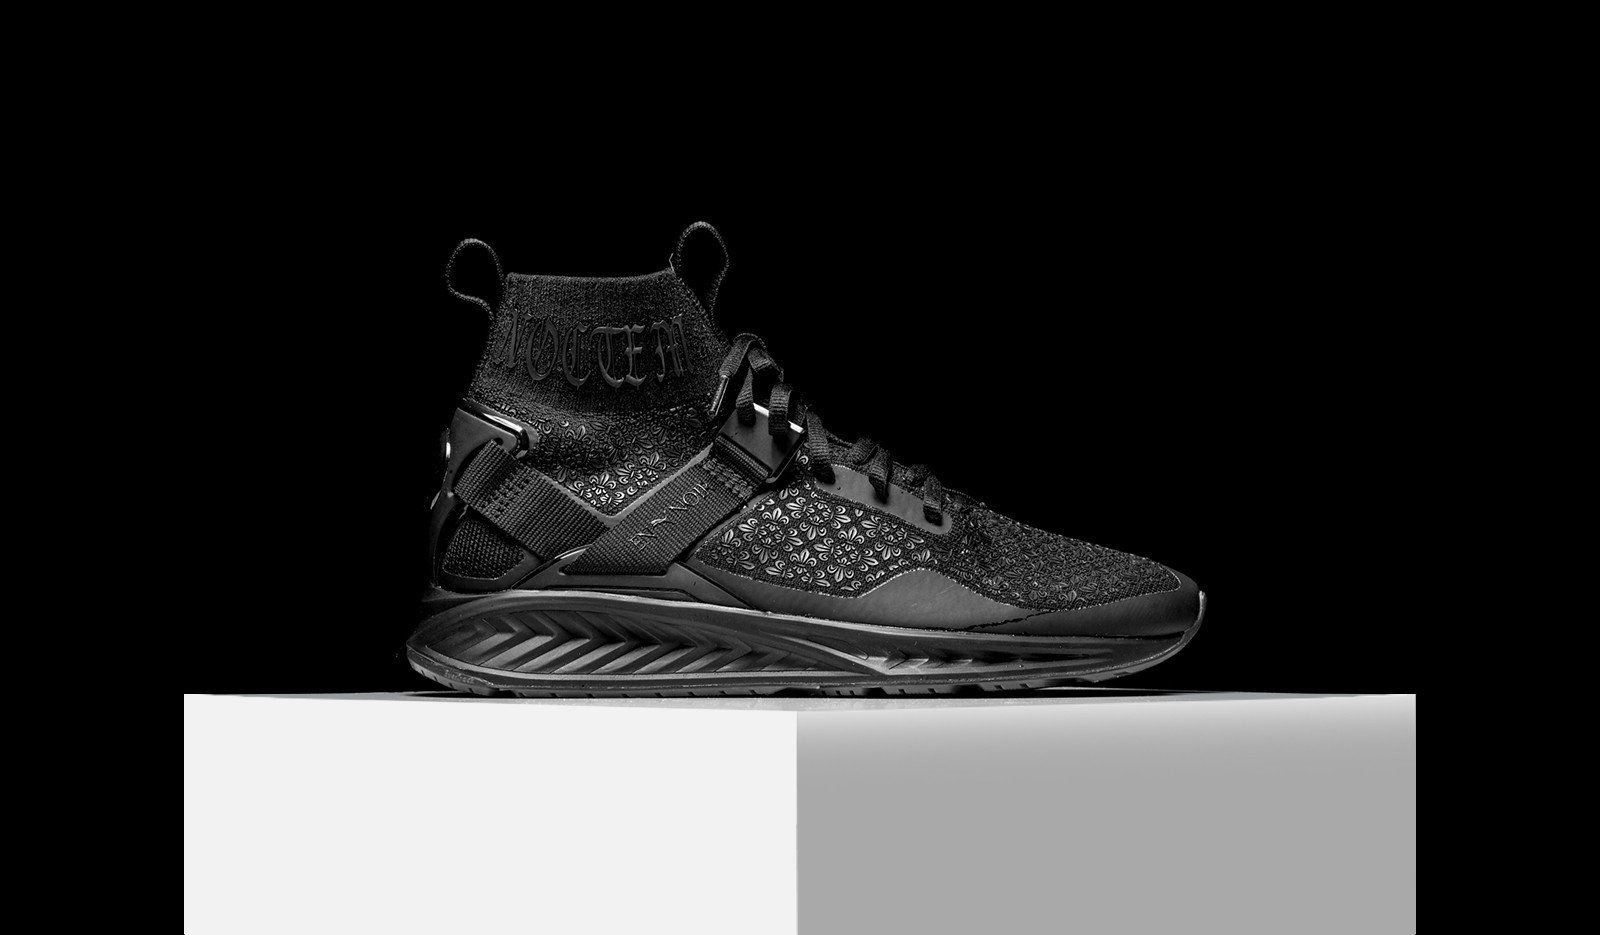 separation shoes 8ba37 e60c2 Puma x En Noir Ignite EvoKnit | kicks | All black sneakers ...